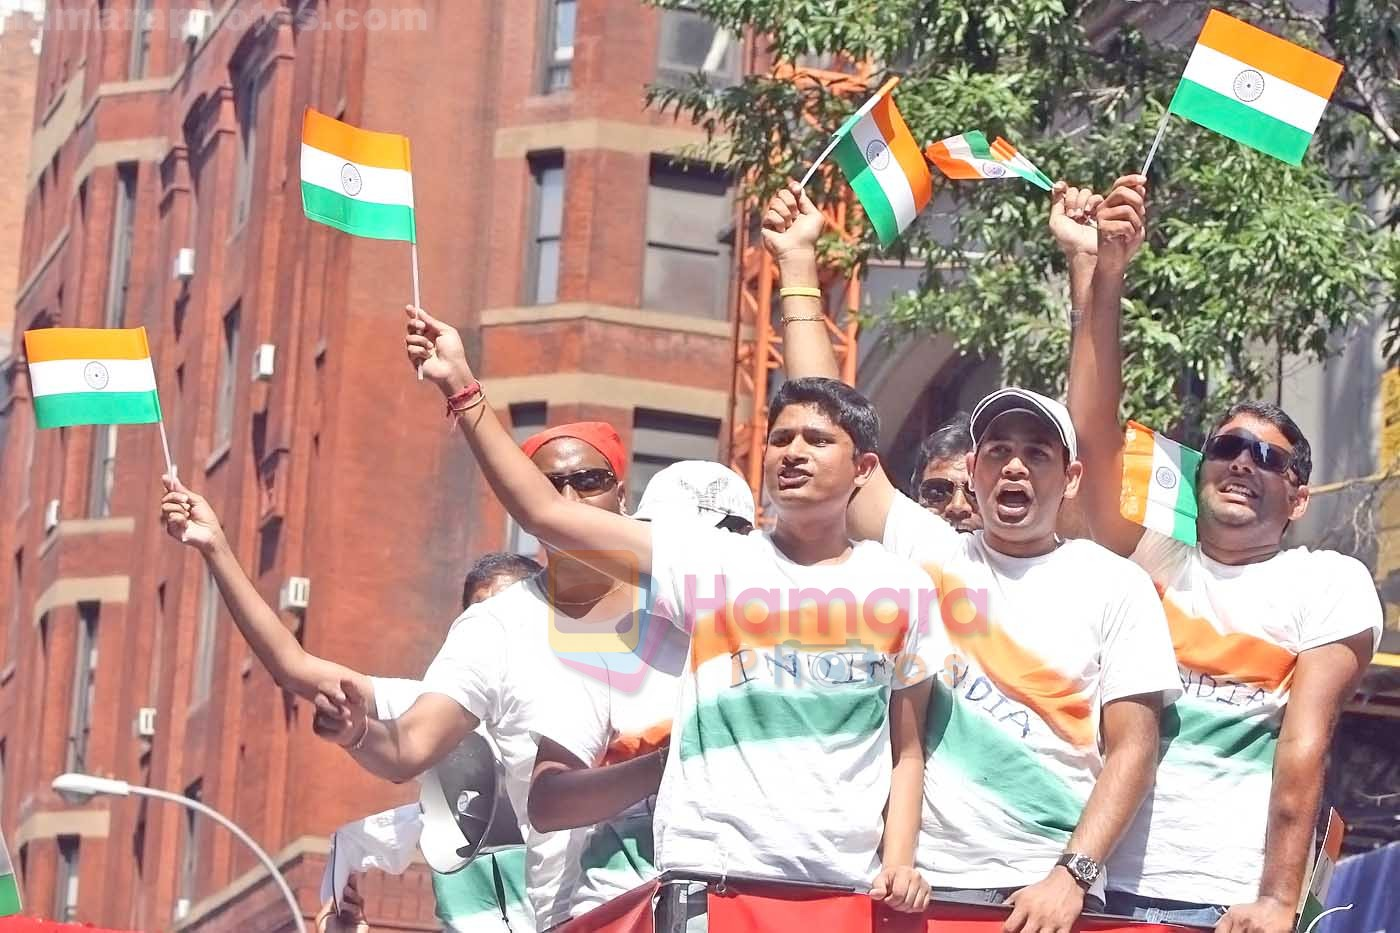 Fans at India Day Parade and Festival in New York on August 16, 2009 in Manhattan, New York